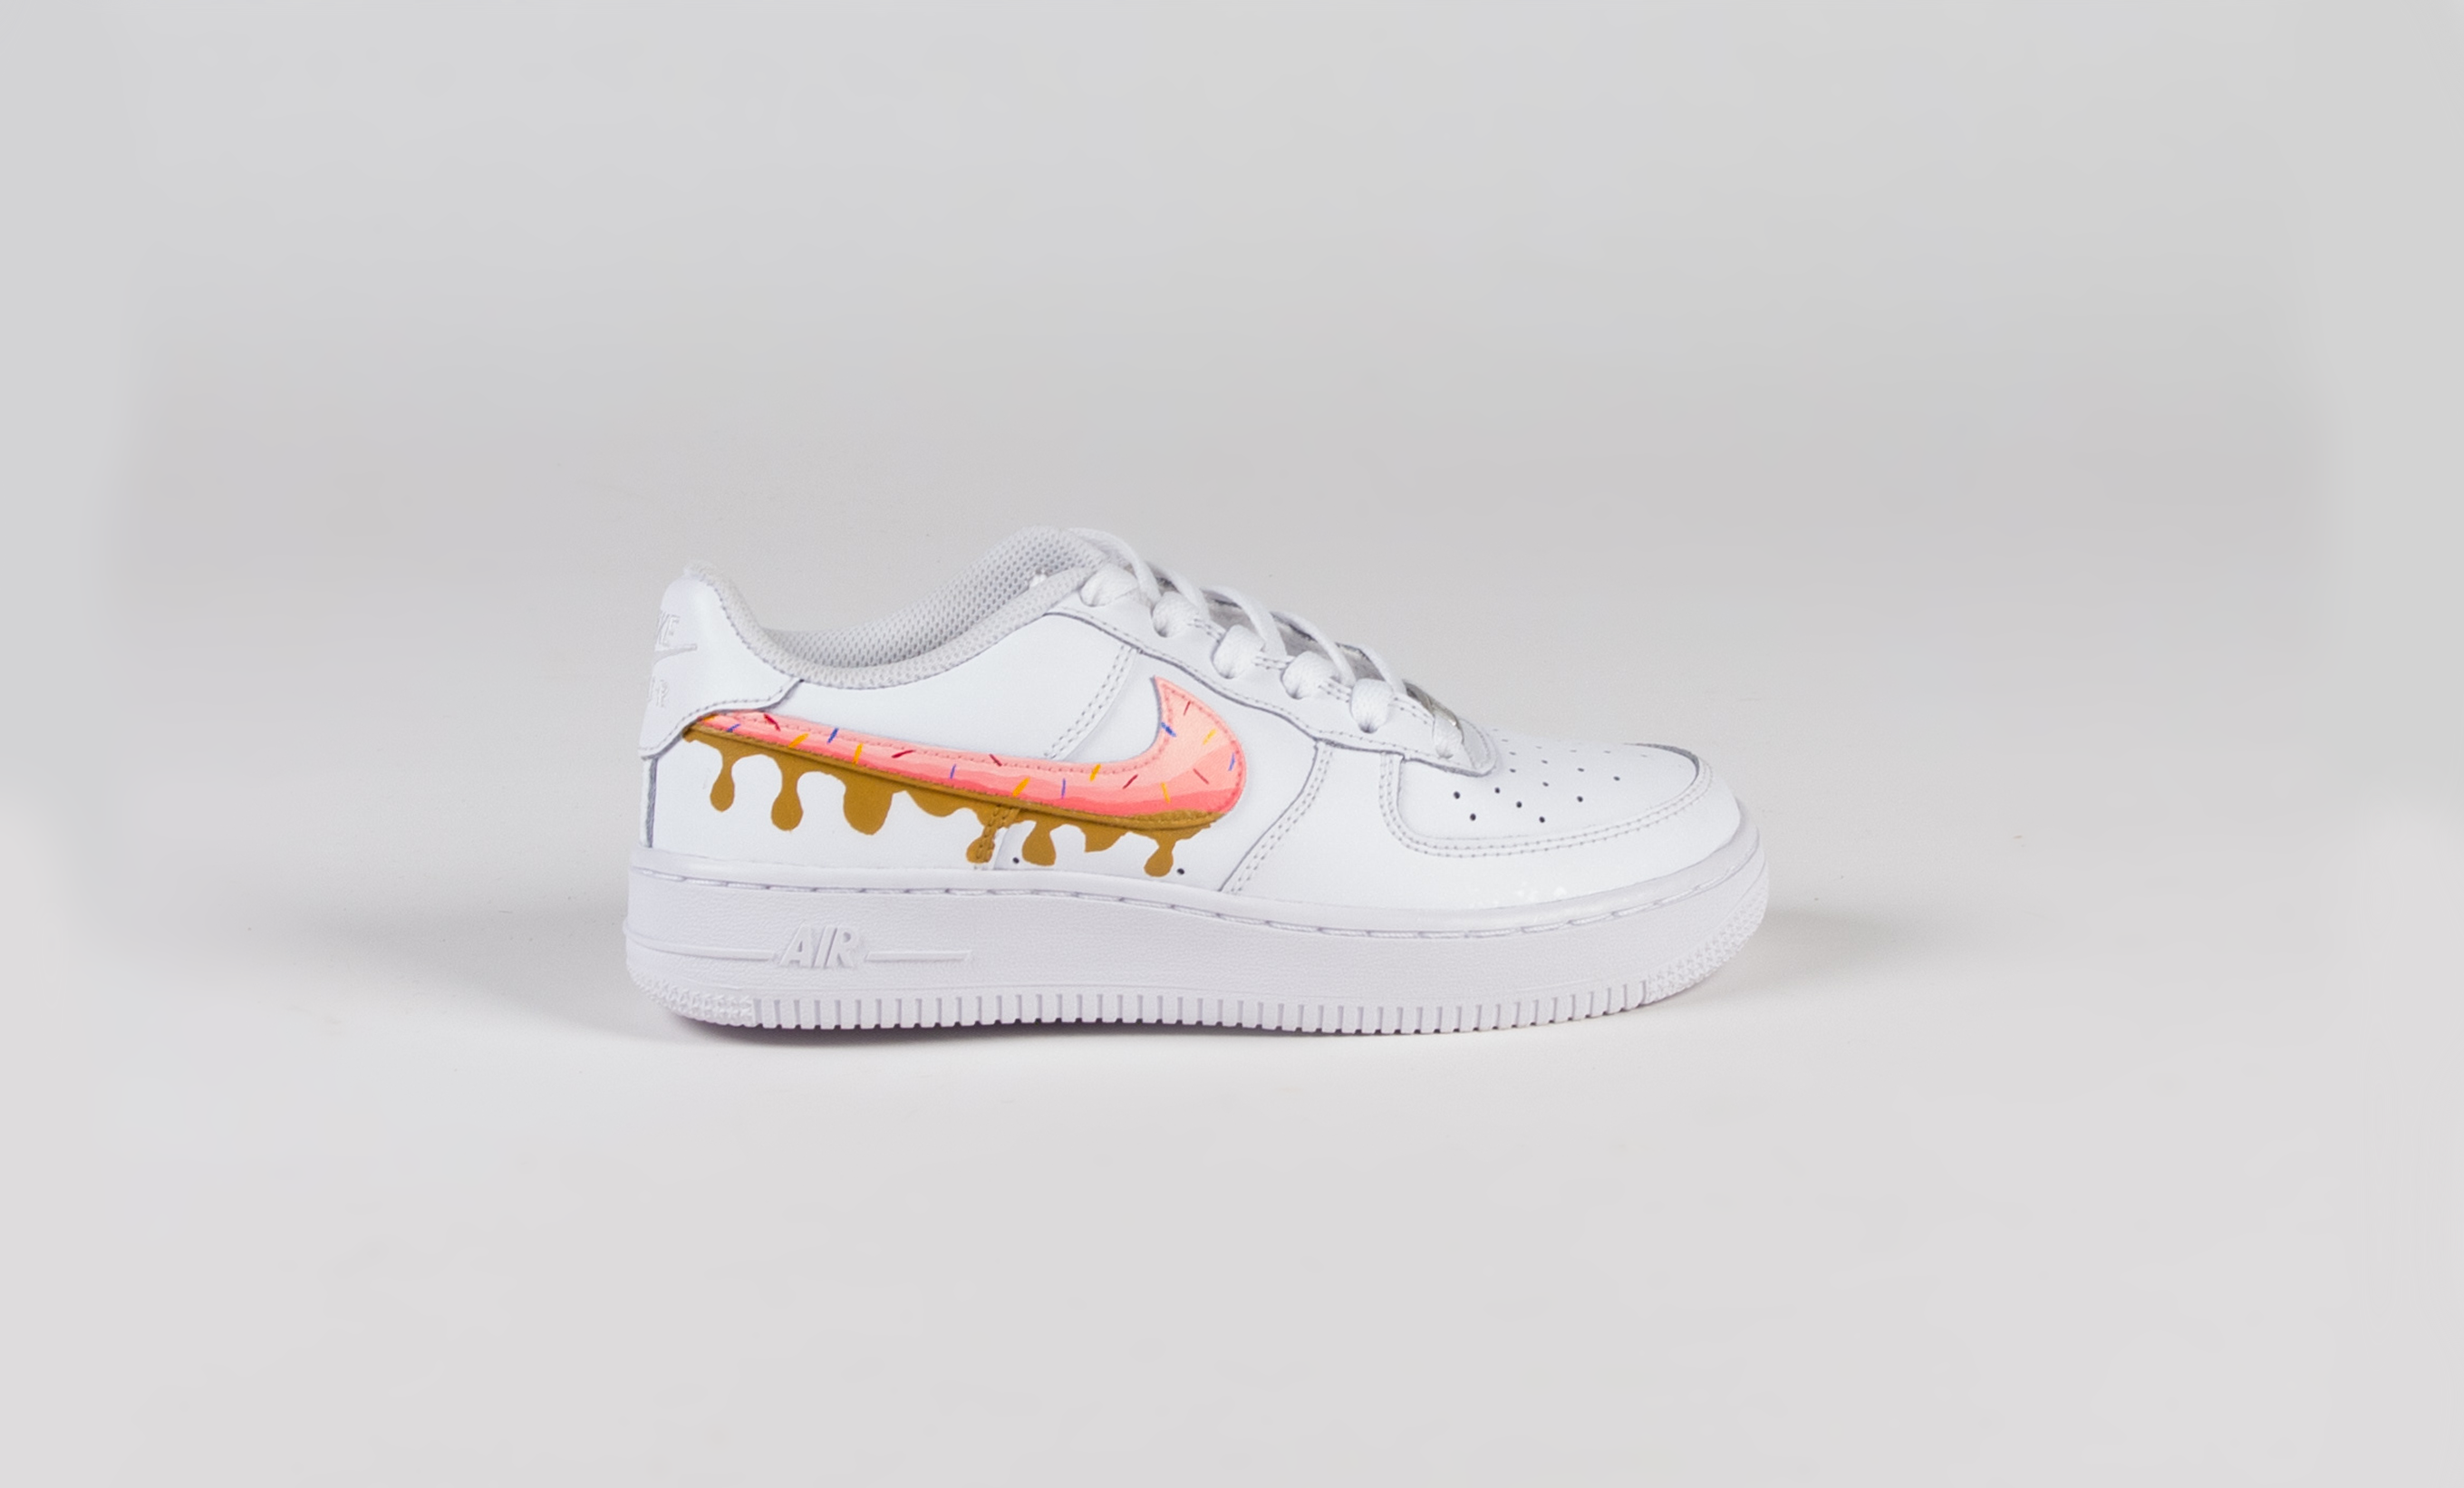 Nike Air Force One Donut Edition Limitee Shoesyourcustom